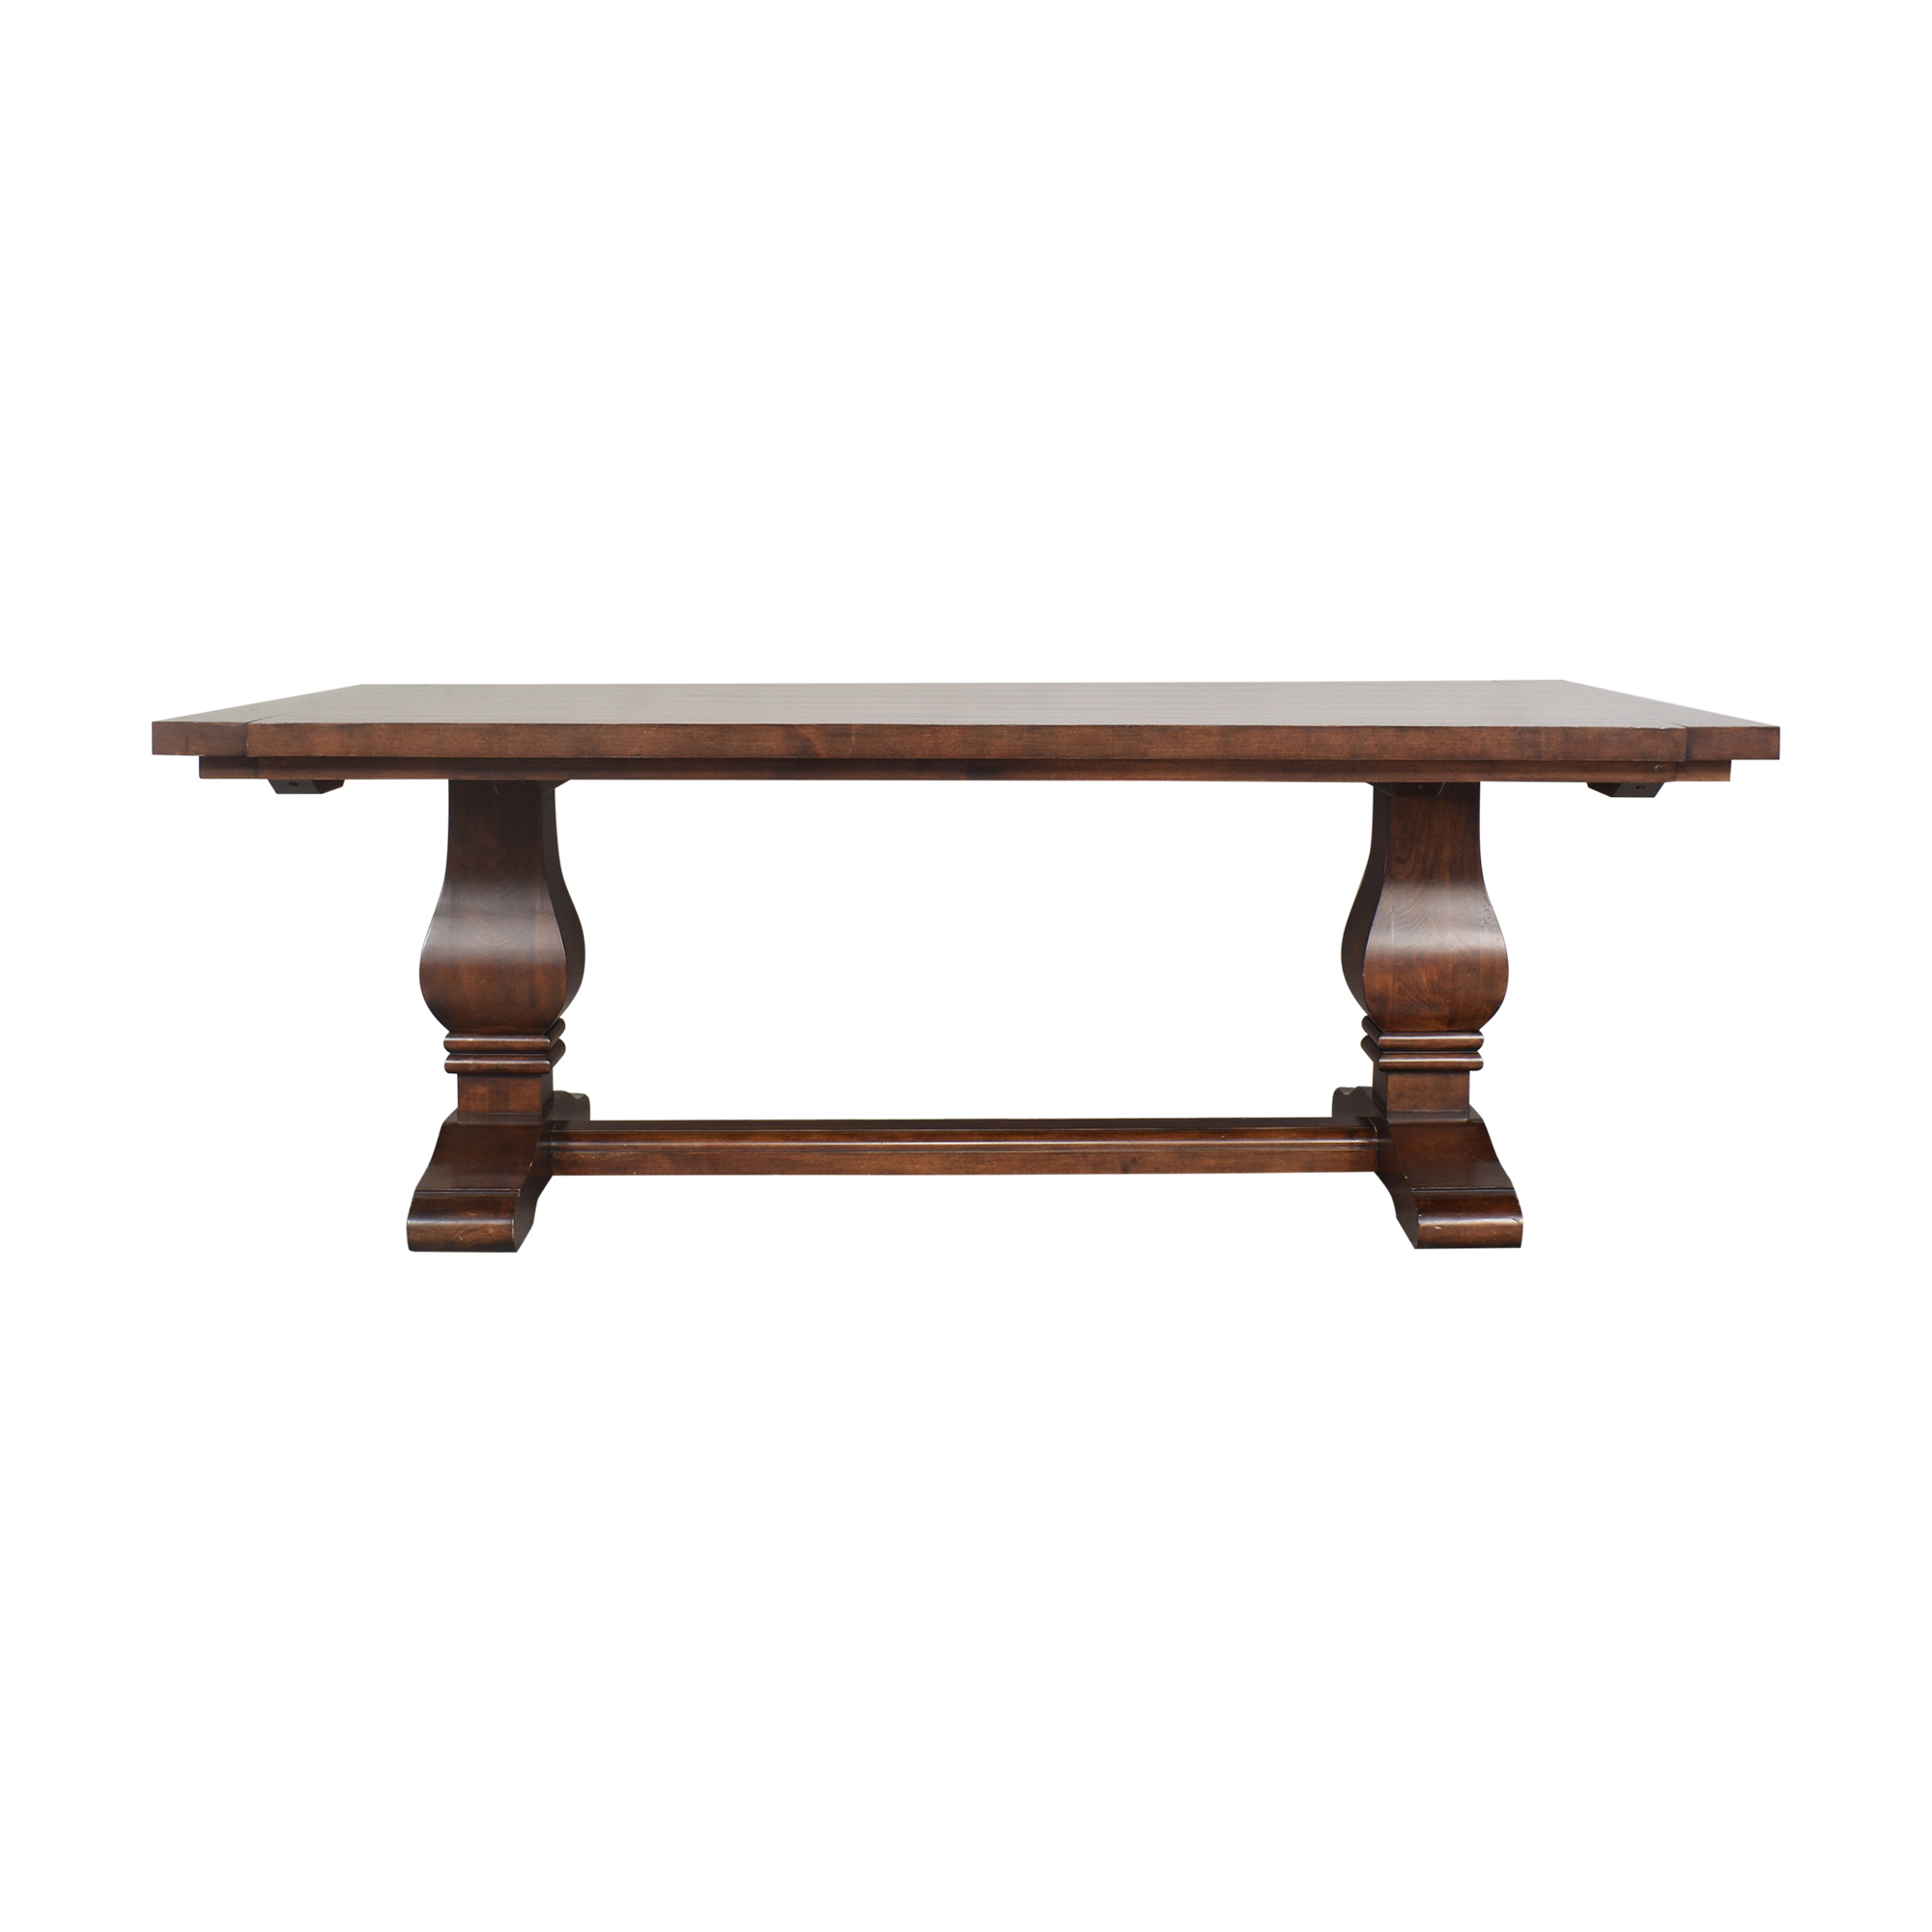 Traditional Pedestal Dining Room Table for sale